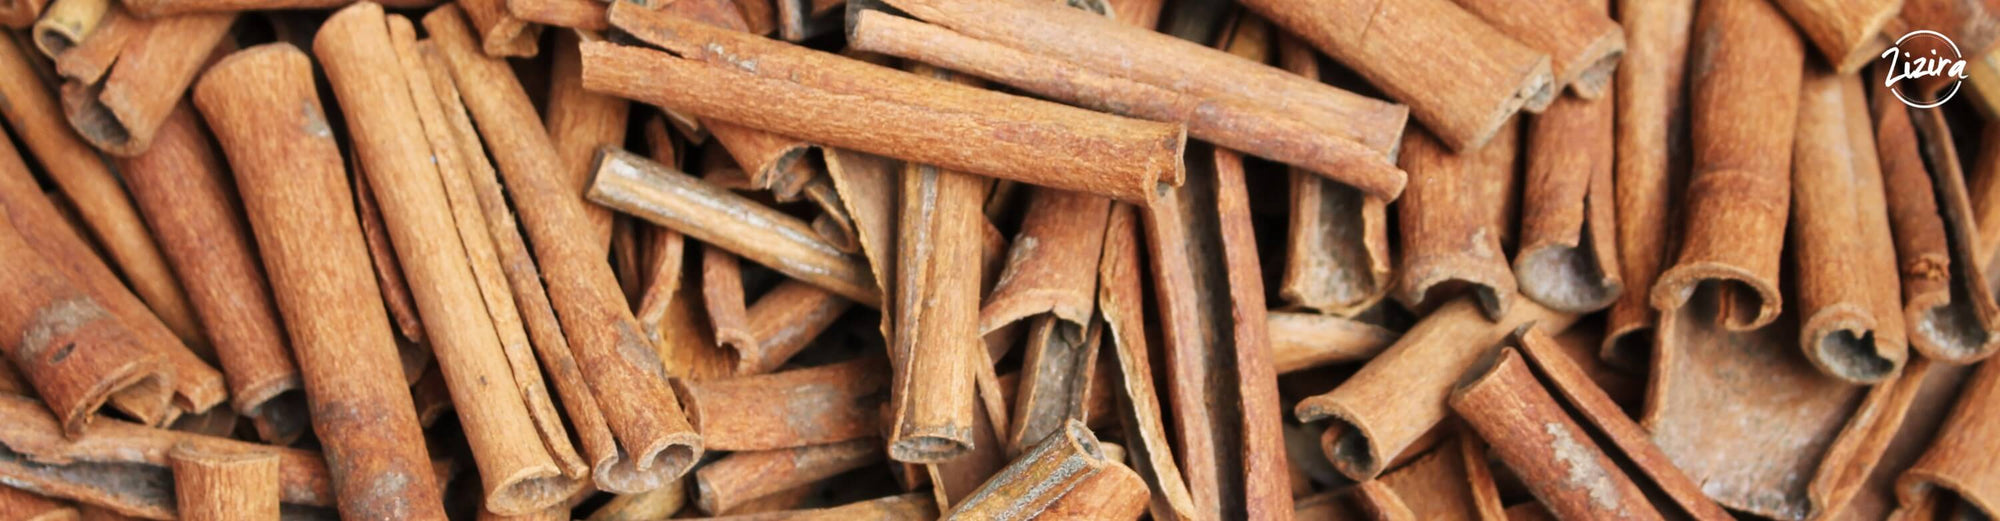 5 Surprising Benefits of Cinnamon for Skin